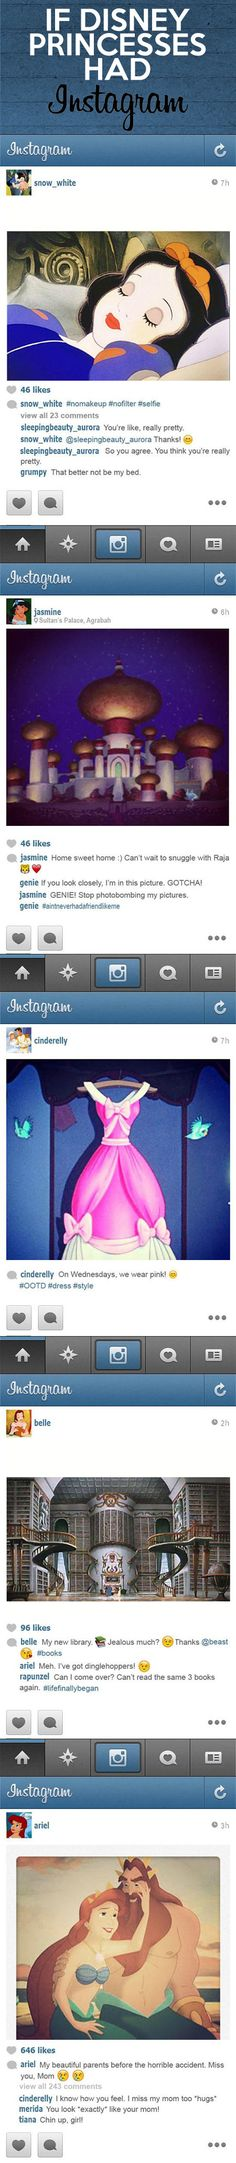 If Disney Princesses had Instagram. Hahaha!!!